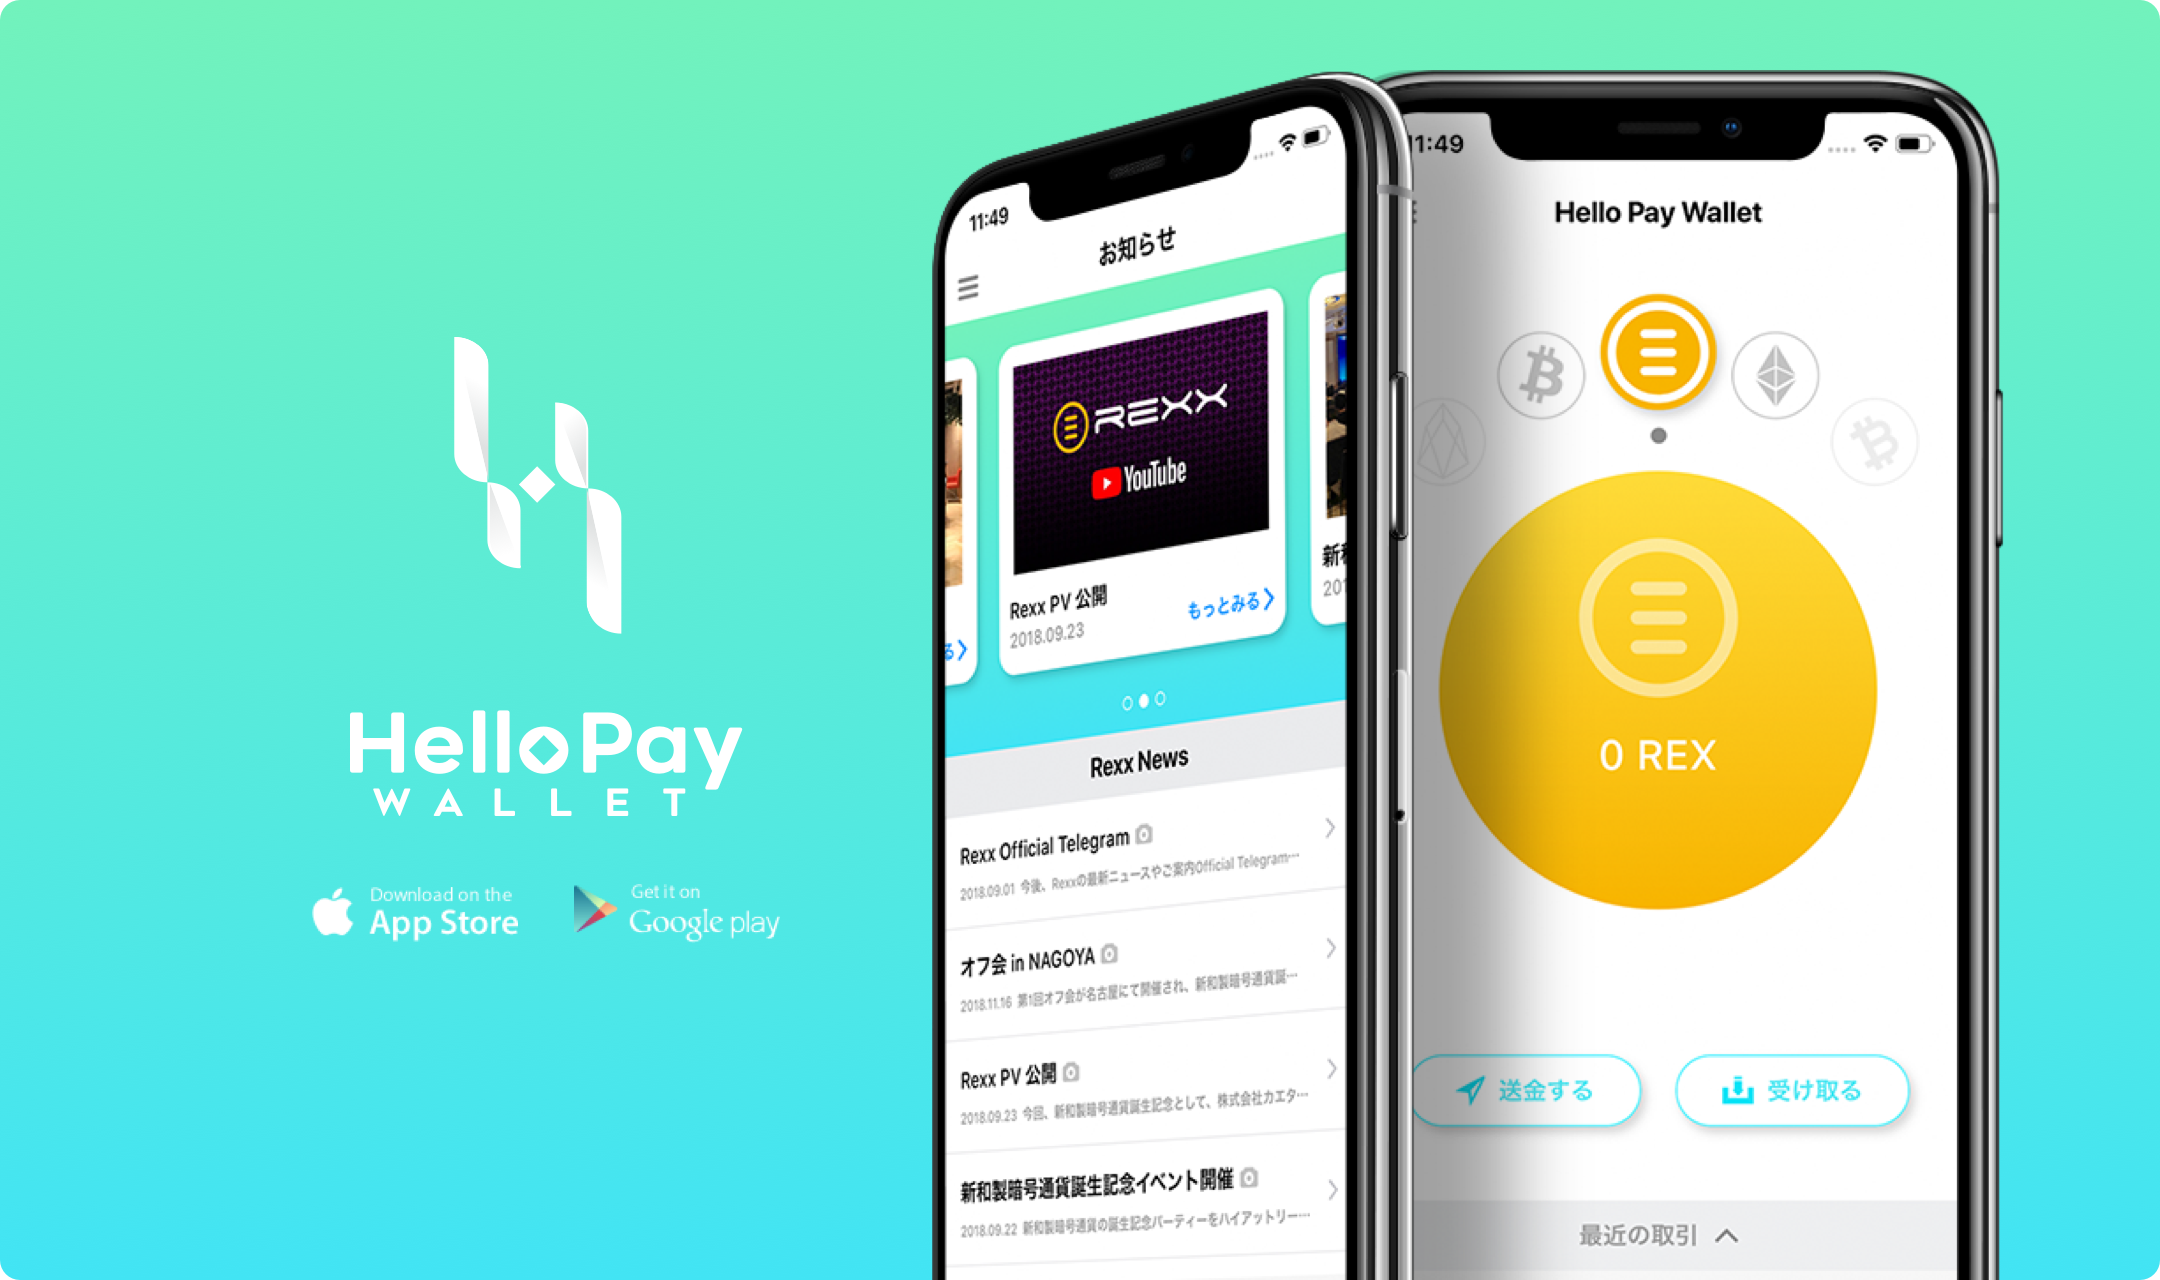 Hello Pay Wallet